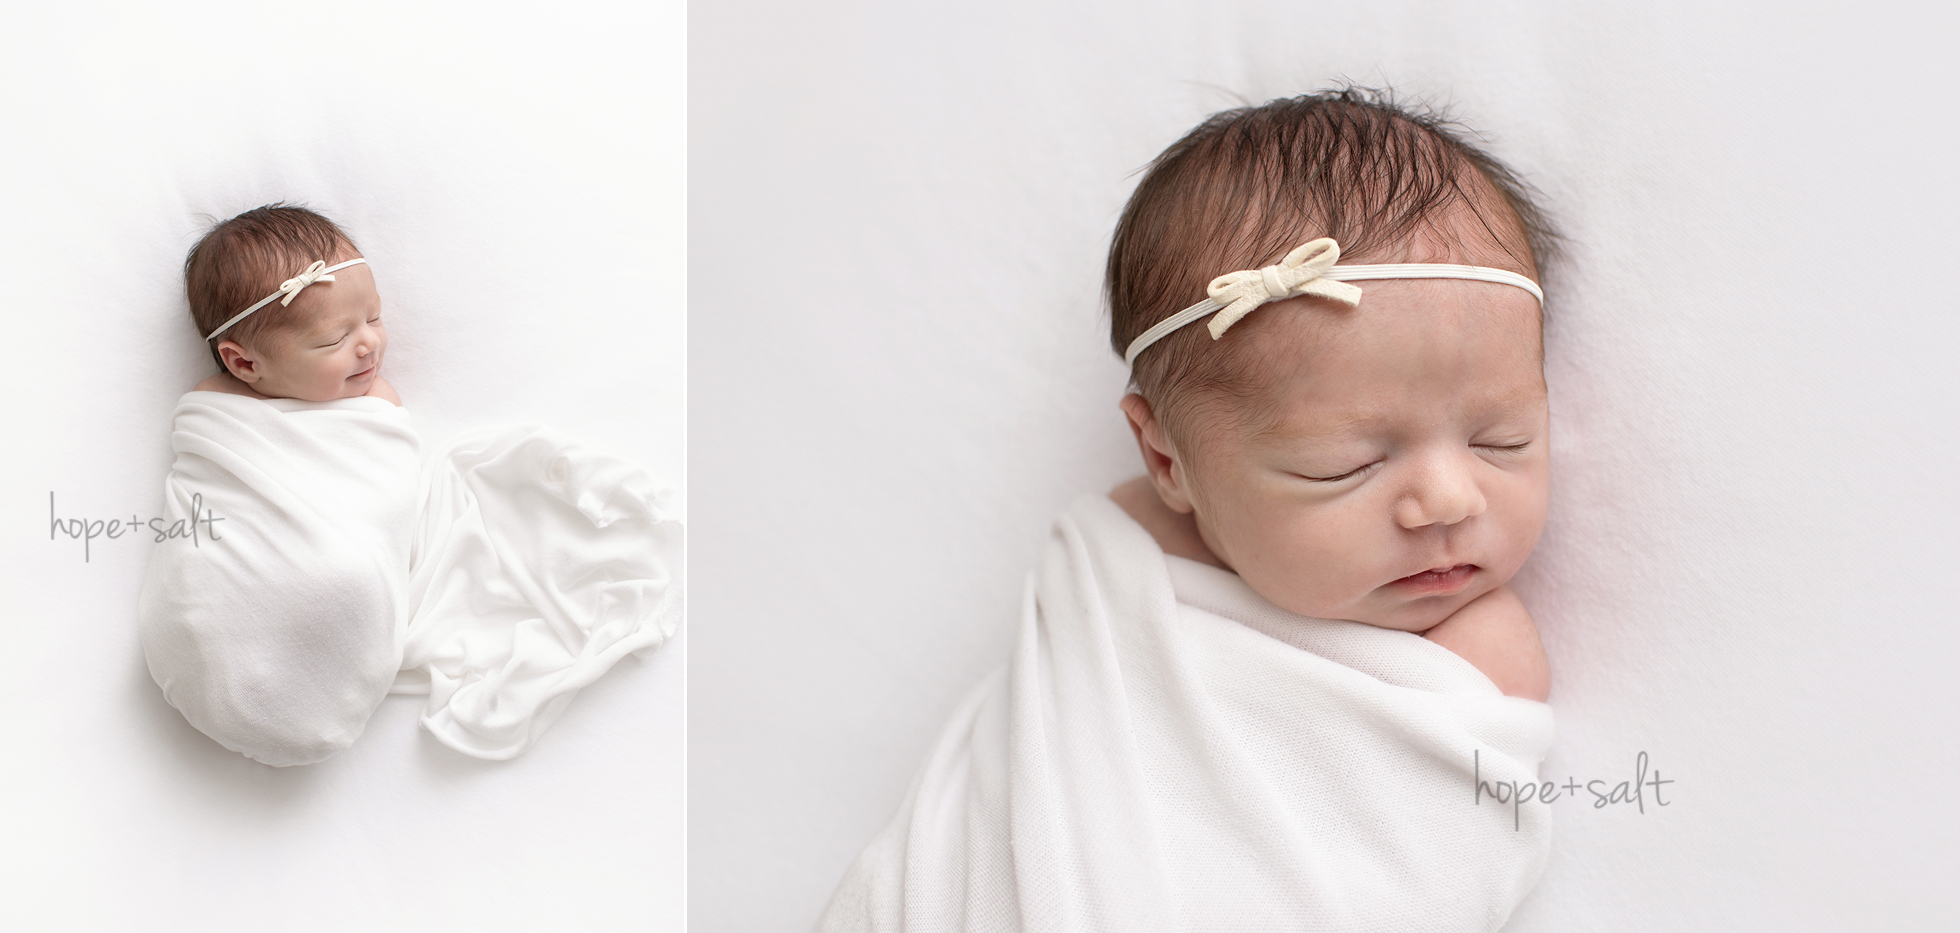 Hamilton ontario newborn photographer - studio session for baby girl Charlotte and family simple natural neutrals by Hope + Salt